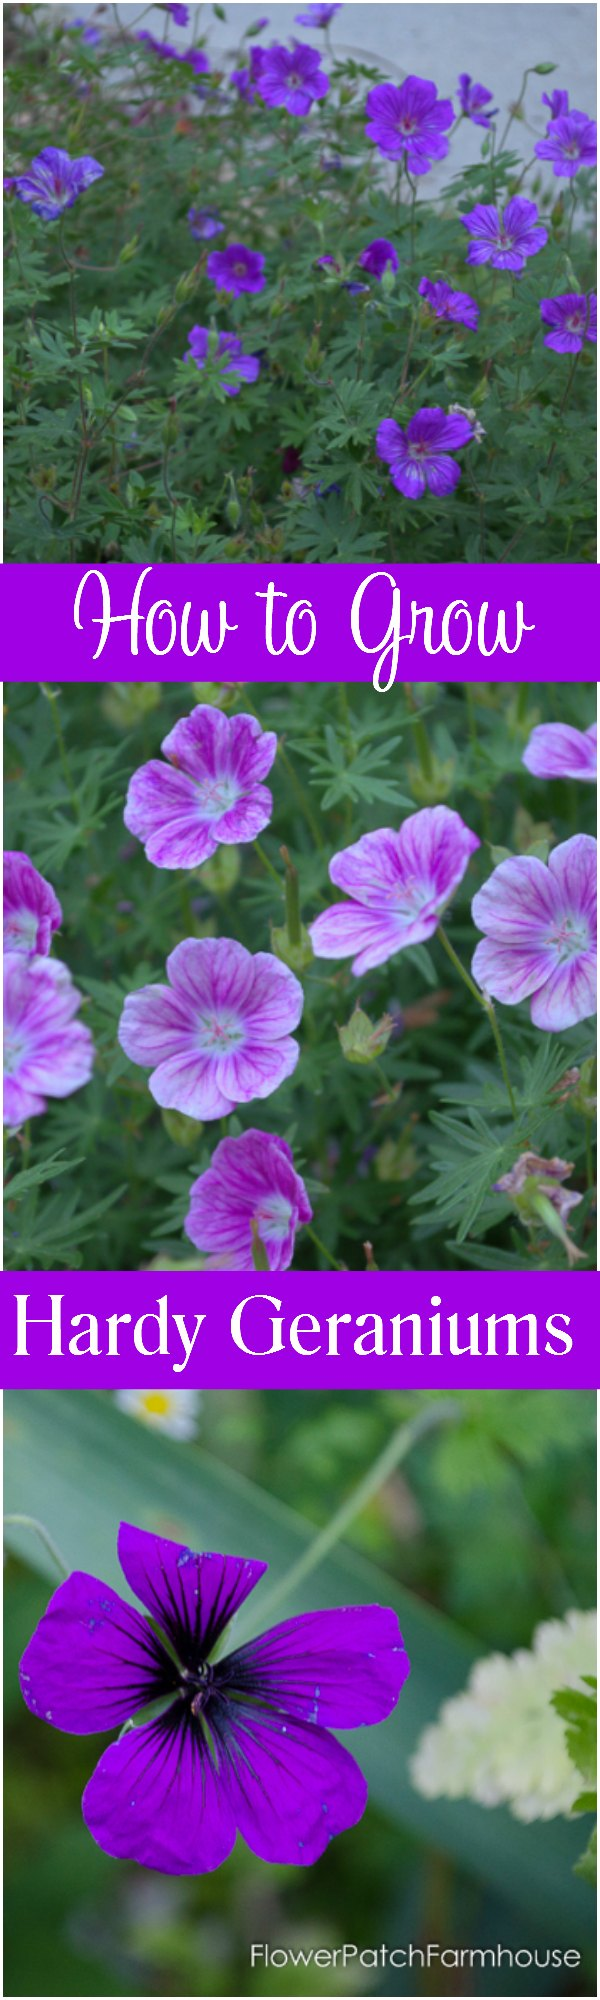 How to grow Hardy aka Cranesbill Geraniums.  A tough plant that will perform well in most gardens. Add this true geranium to your garden and enjoy its long bloom and ease of care.